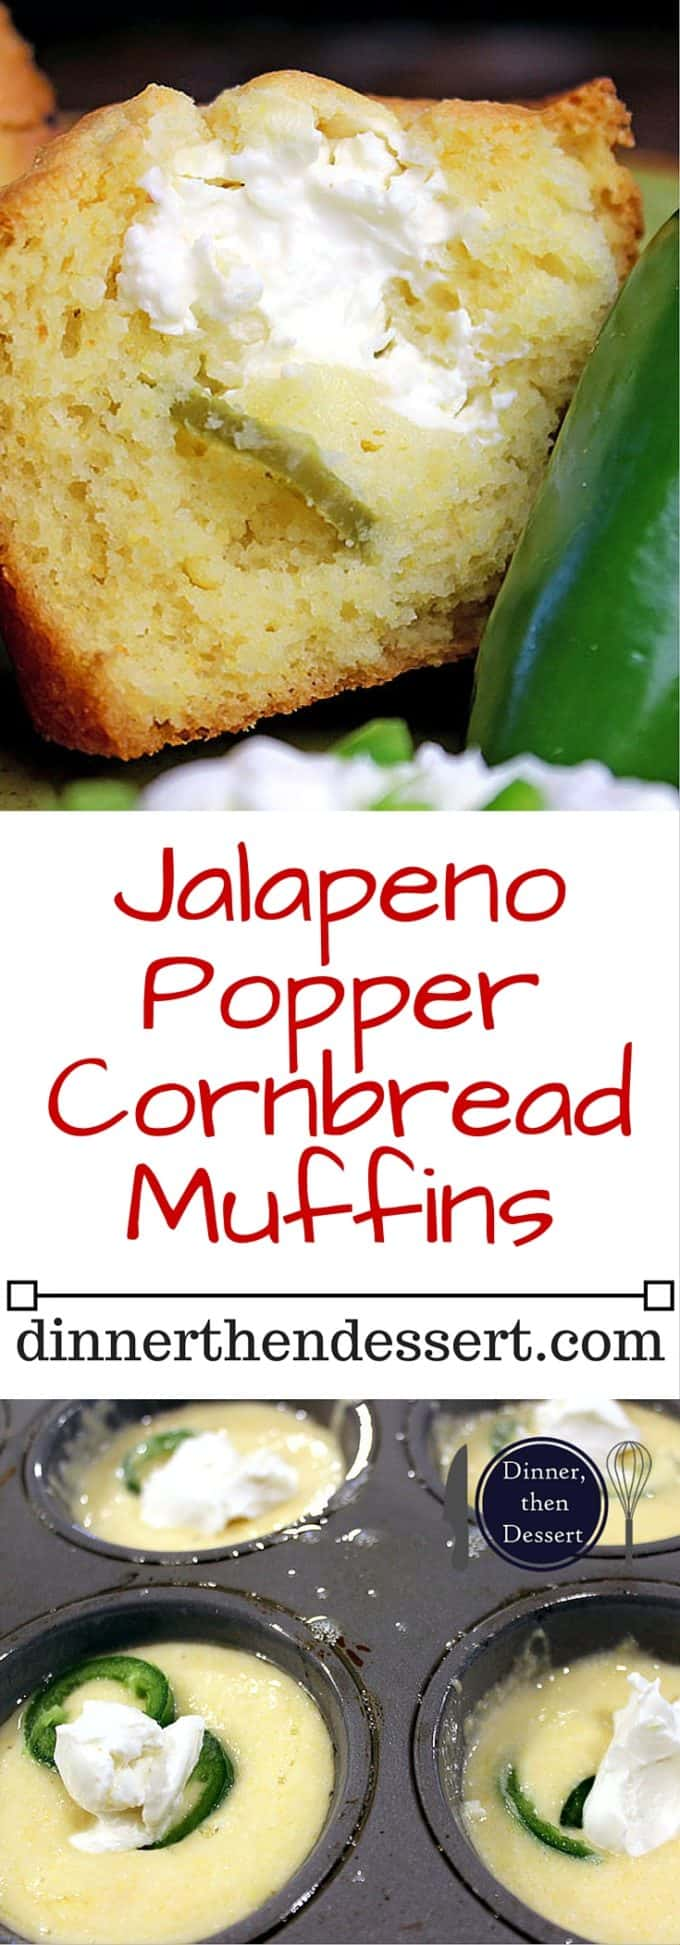 Fluffy buttermilk cornbread muffins filled with cream cheese and jalapenos make for a delicious jalapeno popper cornbread. Your chili or soup will never have tasted better!